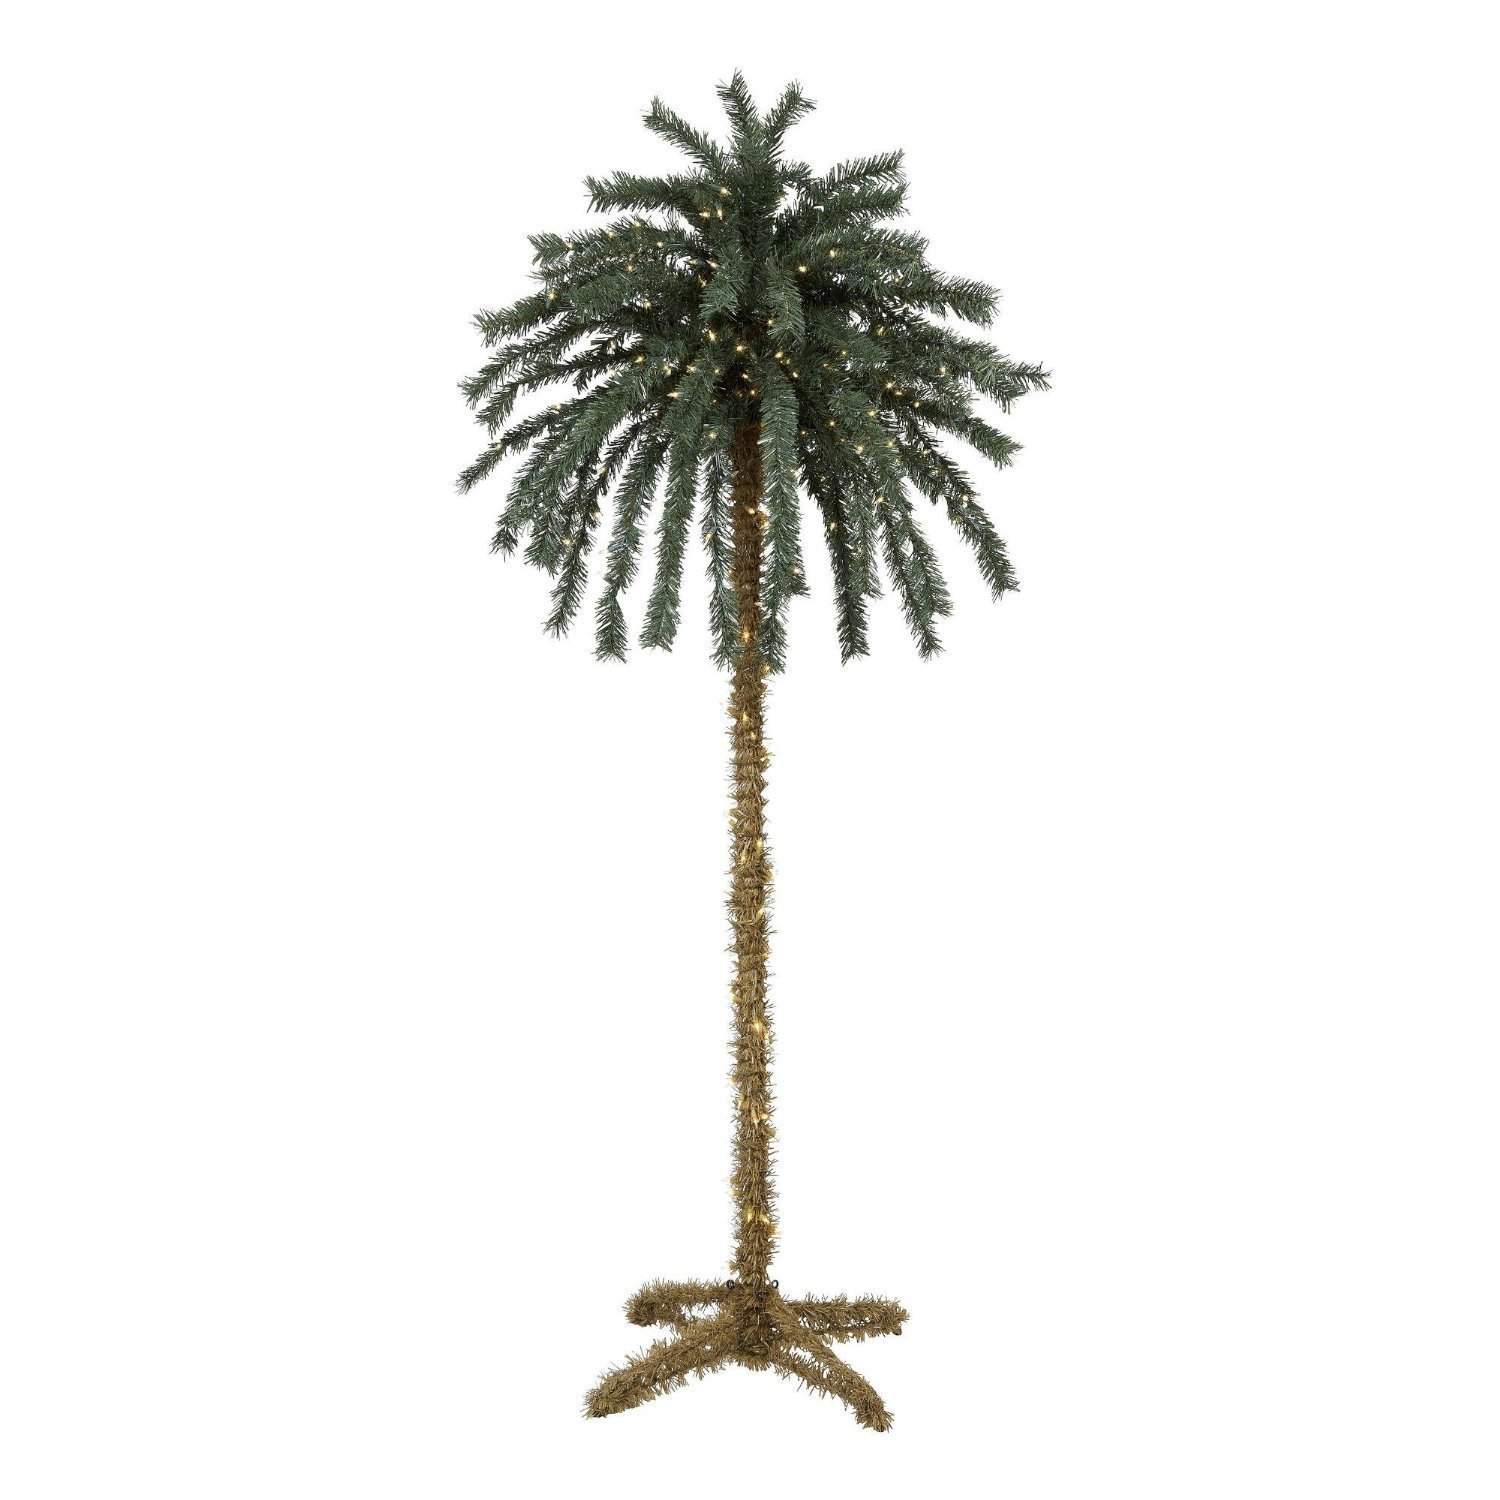 CTS 7 Foot Lighted Palm Tree - 300 Lights - Indoor/Outdoor [D] - Jimmy Buffett Tiki